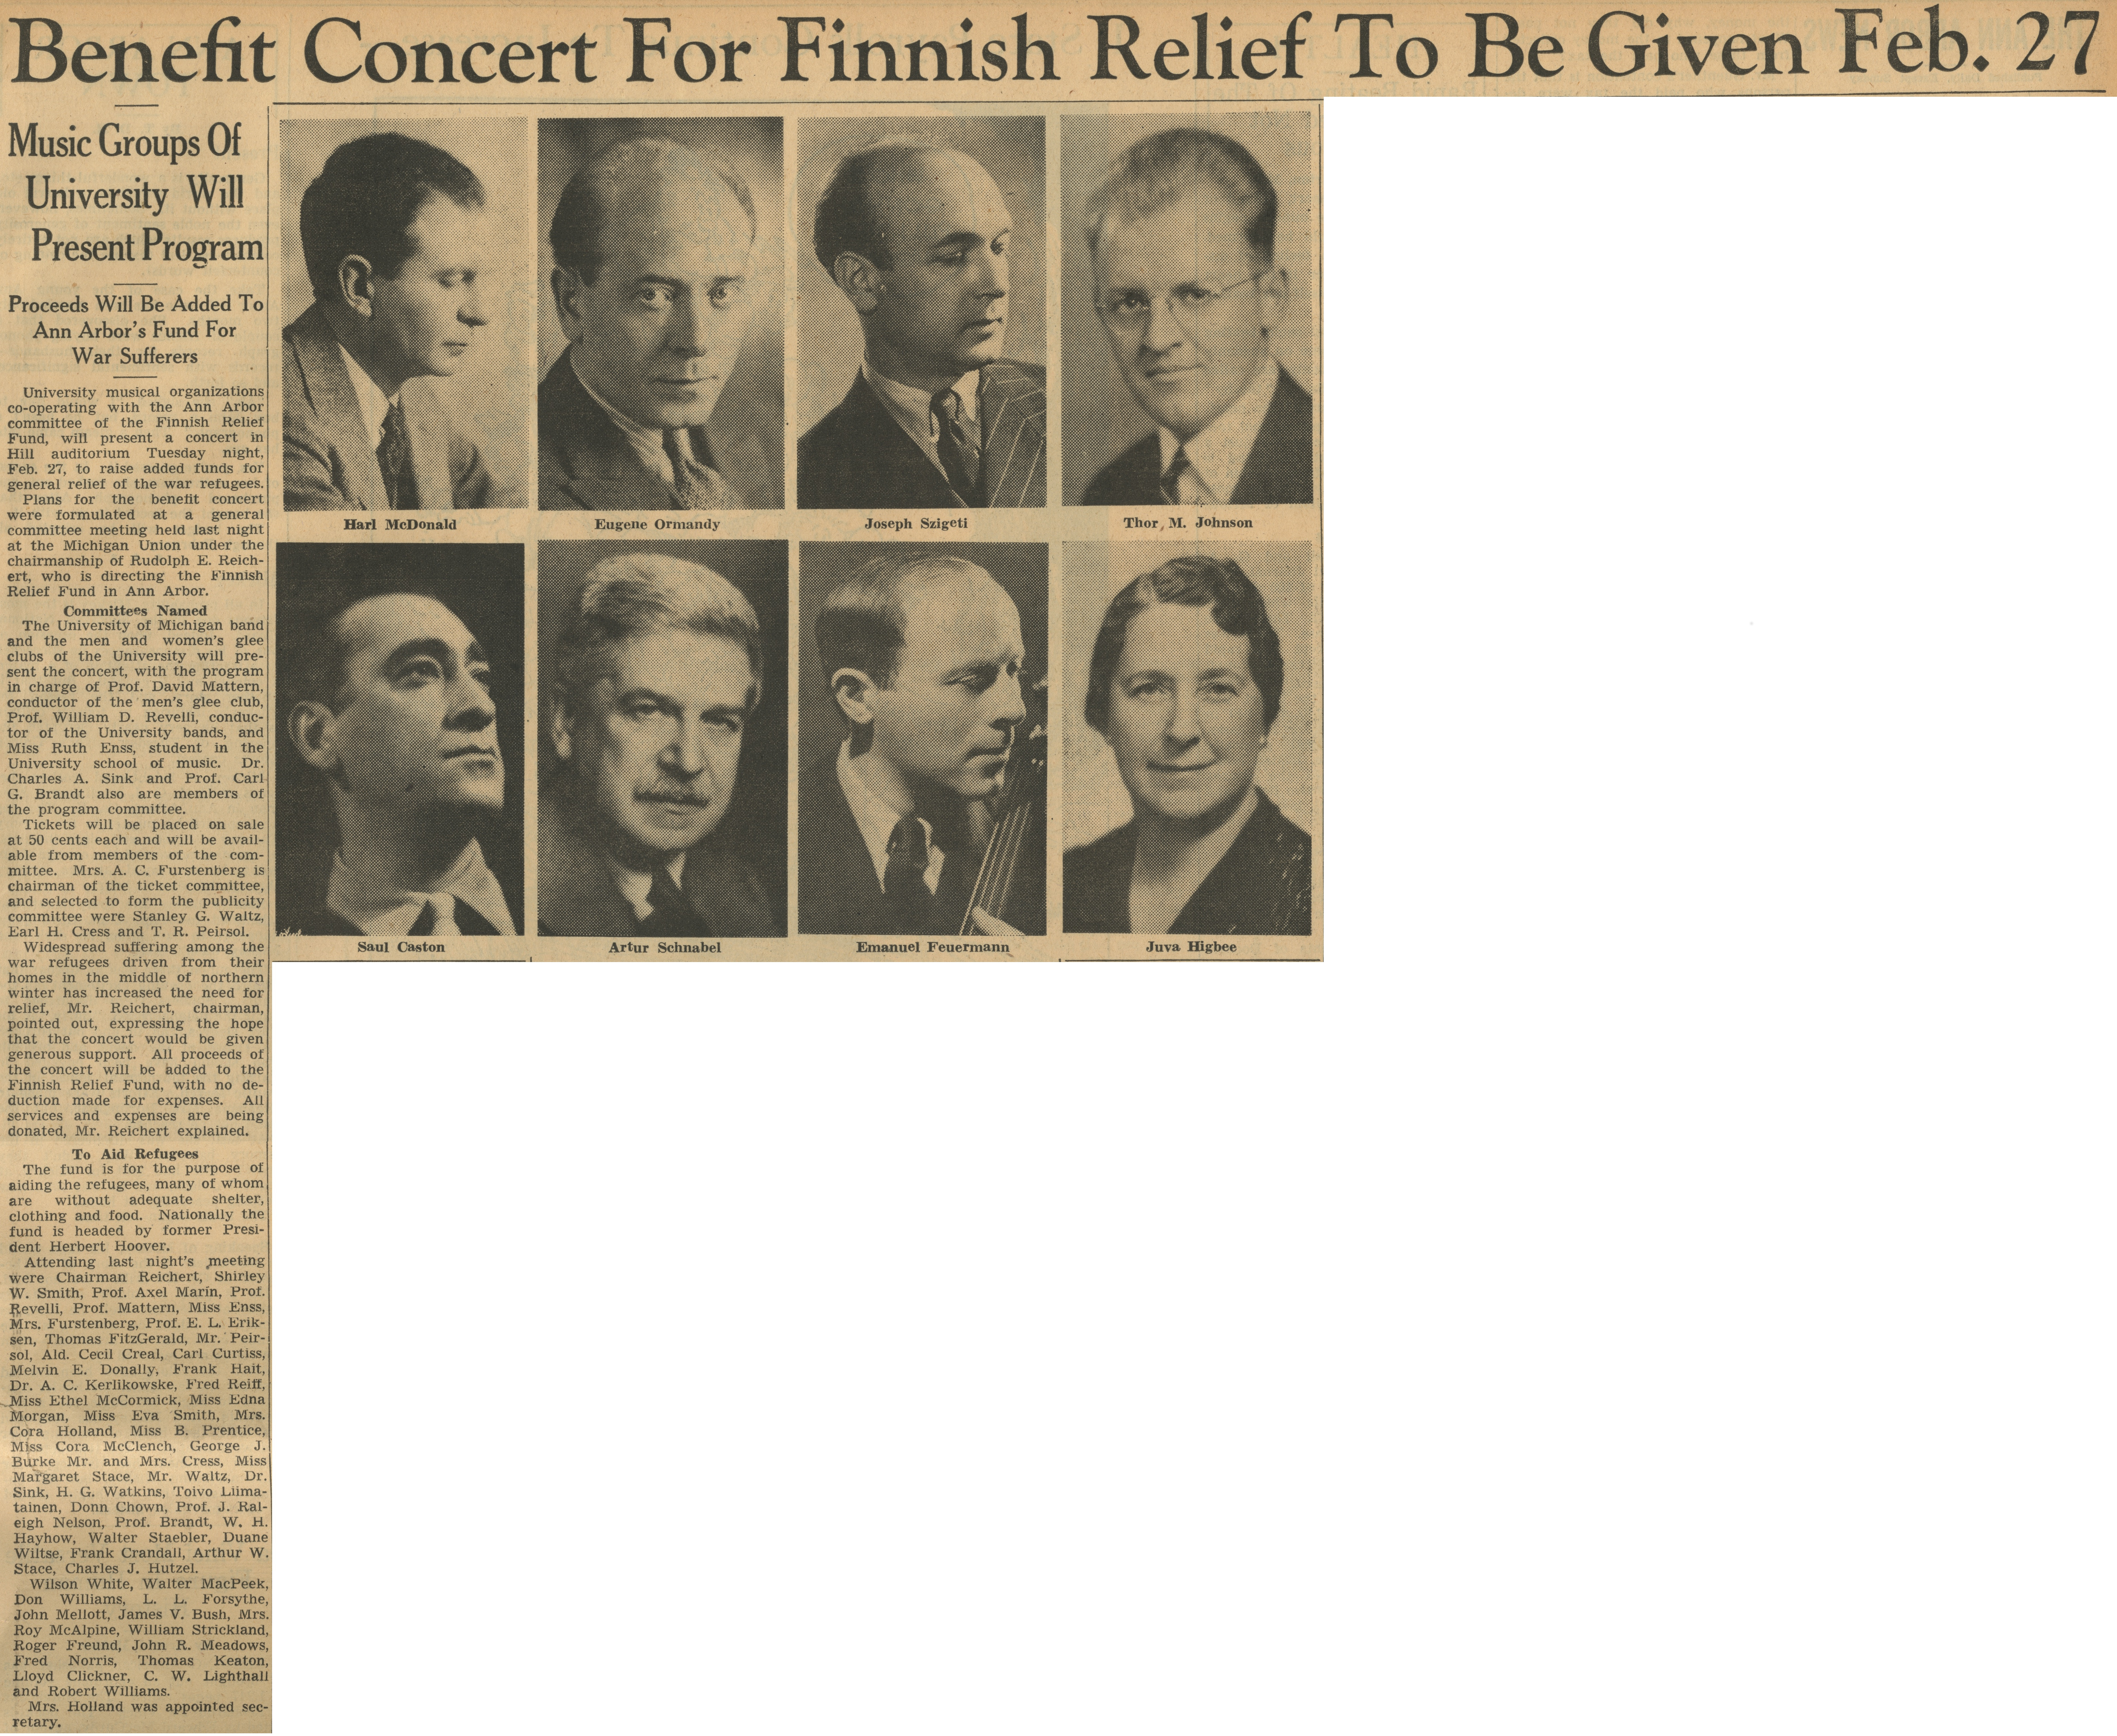 Benefit Concert For Finnish Relief To Be Given Feb. 27: Music Groups of University Will Present Program; Proceeds Will Be Added To Ann Arbor's Fund For War Sufferers image